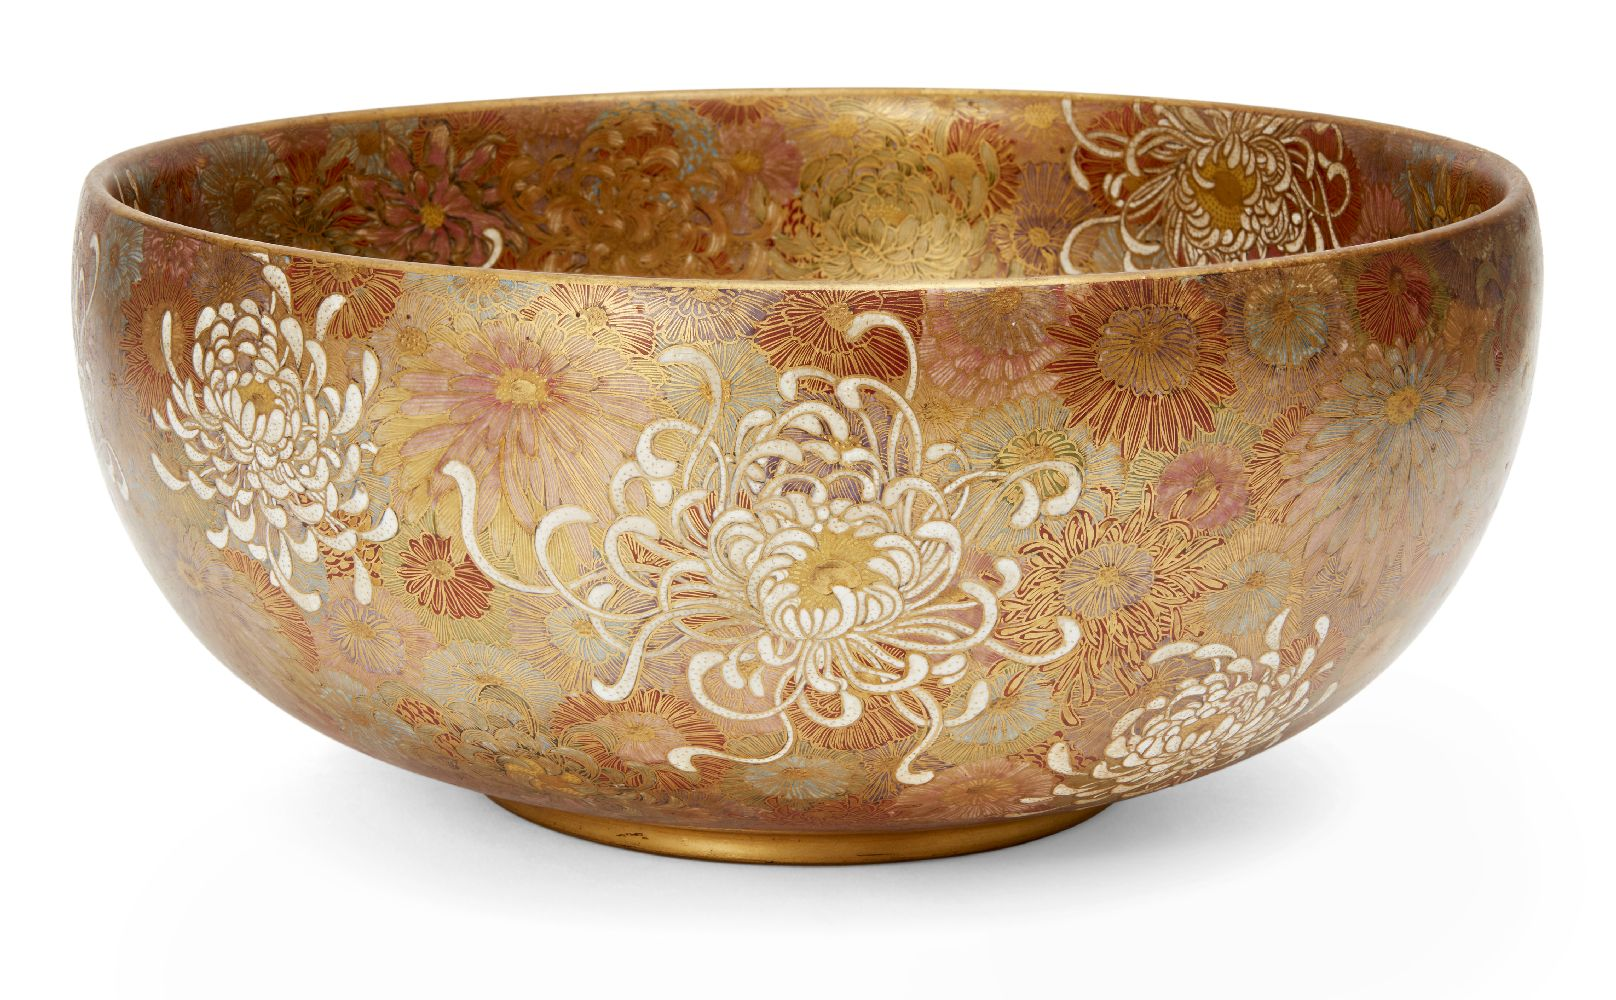 A Japanese Satsuma chrysanthemum bowl, Meiji period, decorated in gold, red, blue, green and